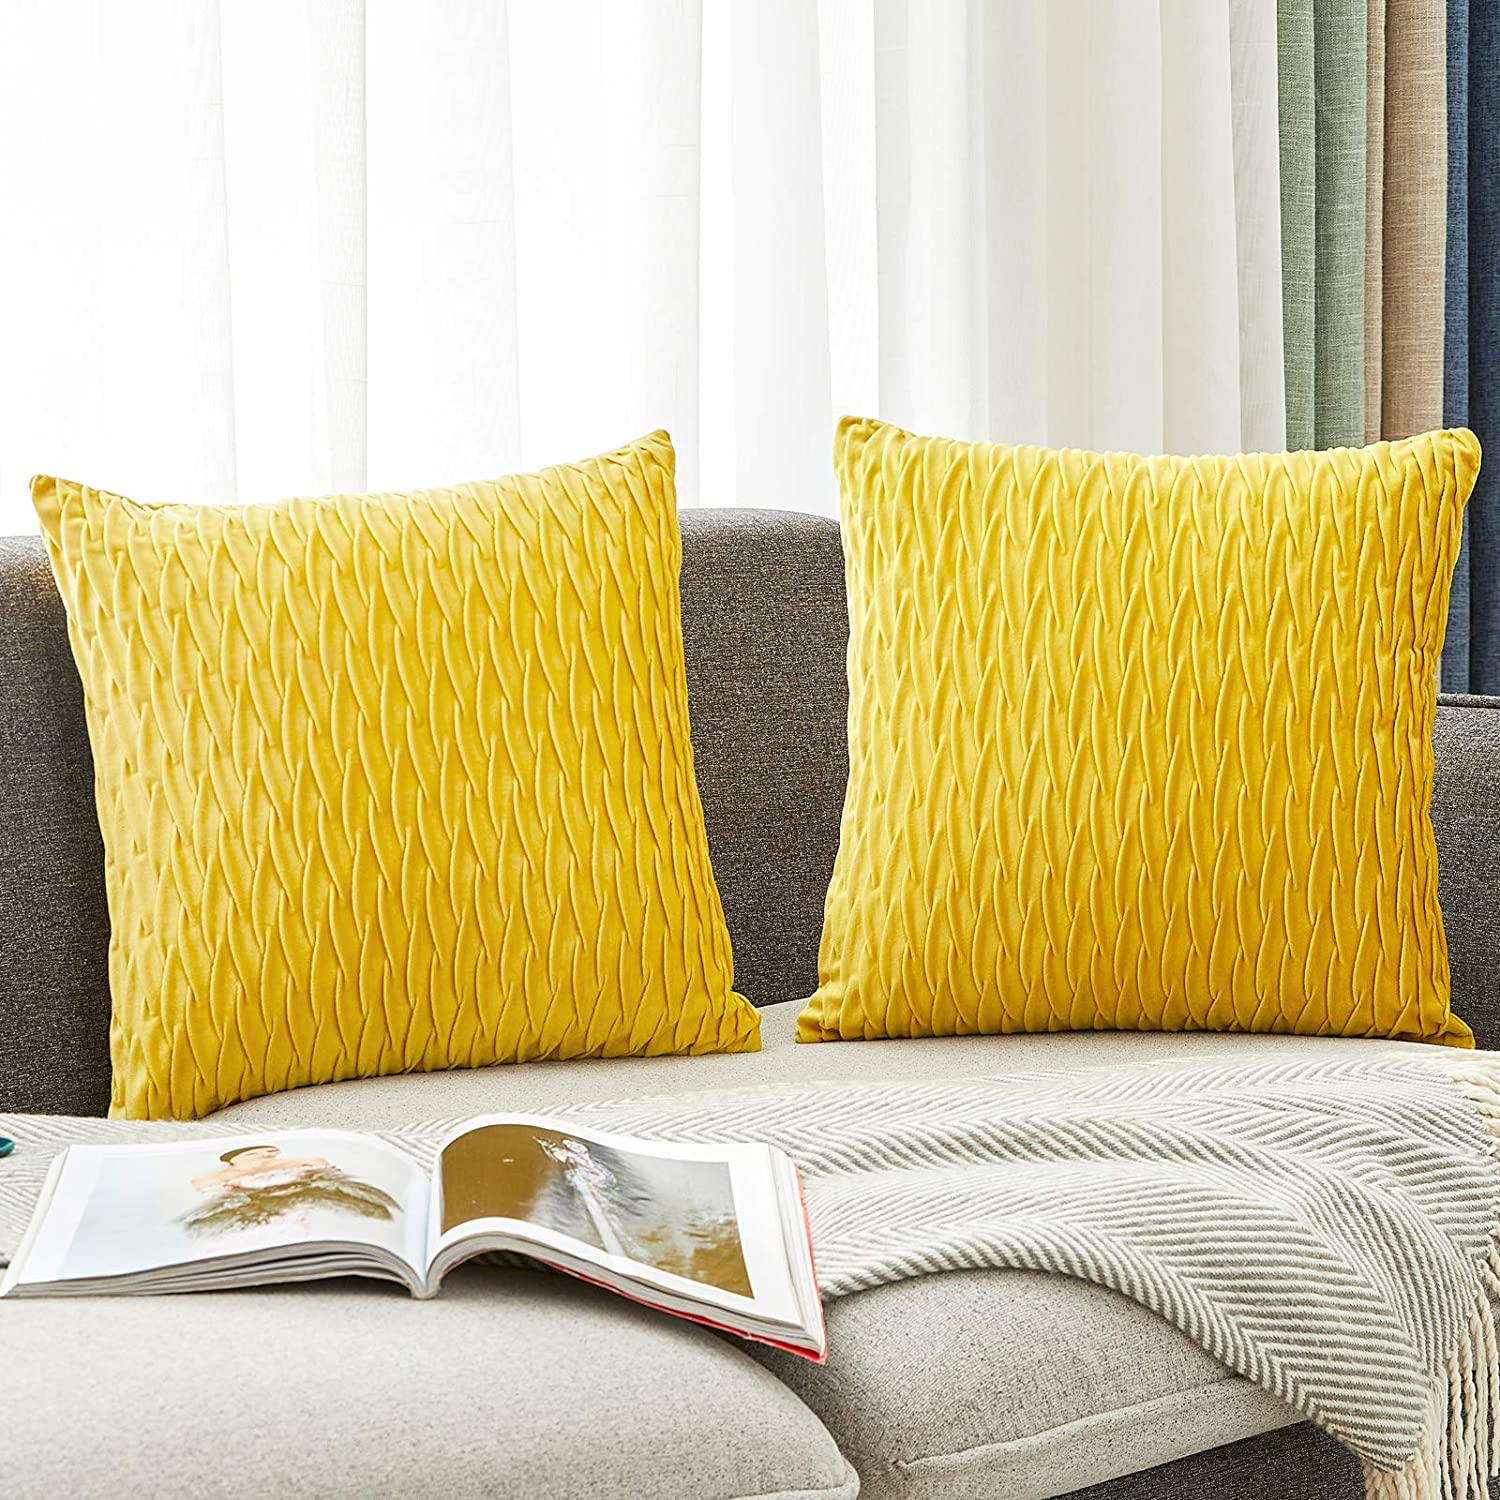 HOLLHOFF Mustard Yellow Throw Pillow Covers Decorative Striped Soft Velvet Square Cushion Case for Couch Living Room Sofa Home Decor Set of 2, 18 x 18 Inch (45cm) No Inserts